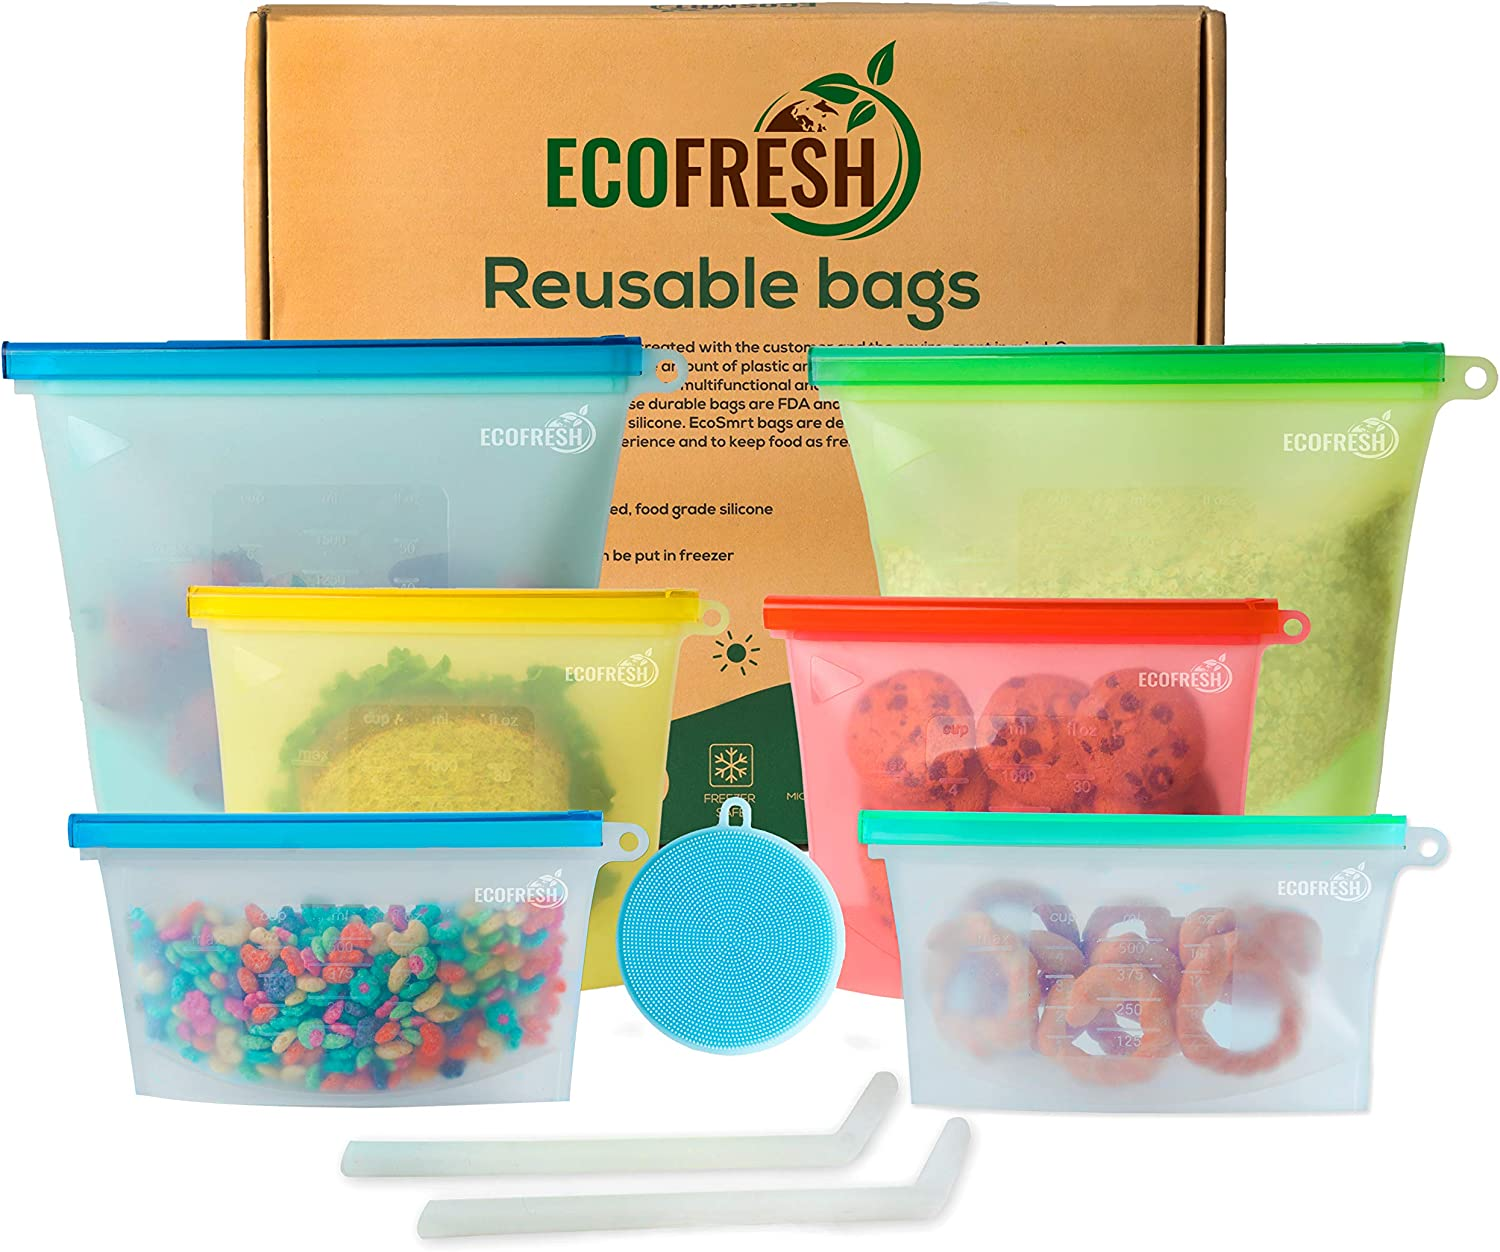 EcoFresh Silicone Food Storage Bag - (Set of 6) 2 Small, 2 Med and 2 Large Reusable Kitchen Bags - Airtight Storage Bags for Lunch, Fruits, and Liquid - Zero Waste Reusable Snack Bag for Freezer